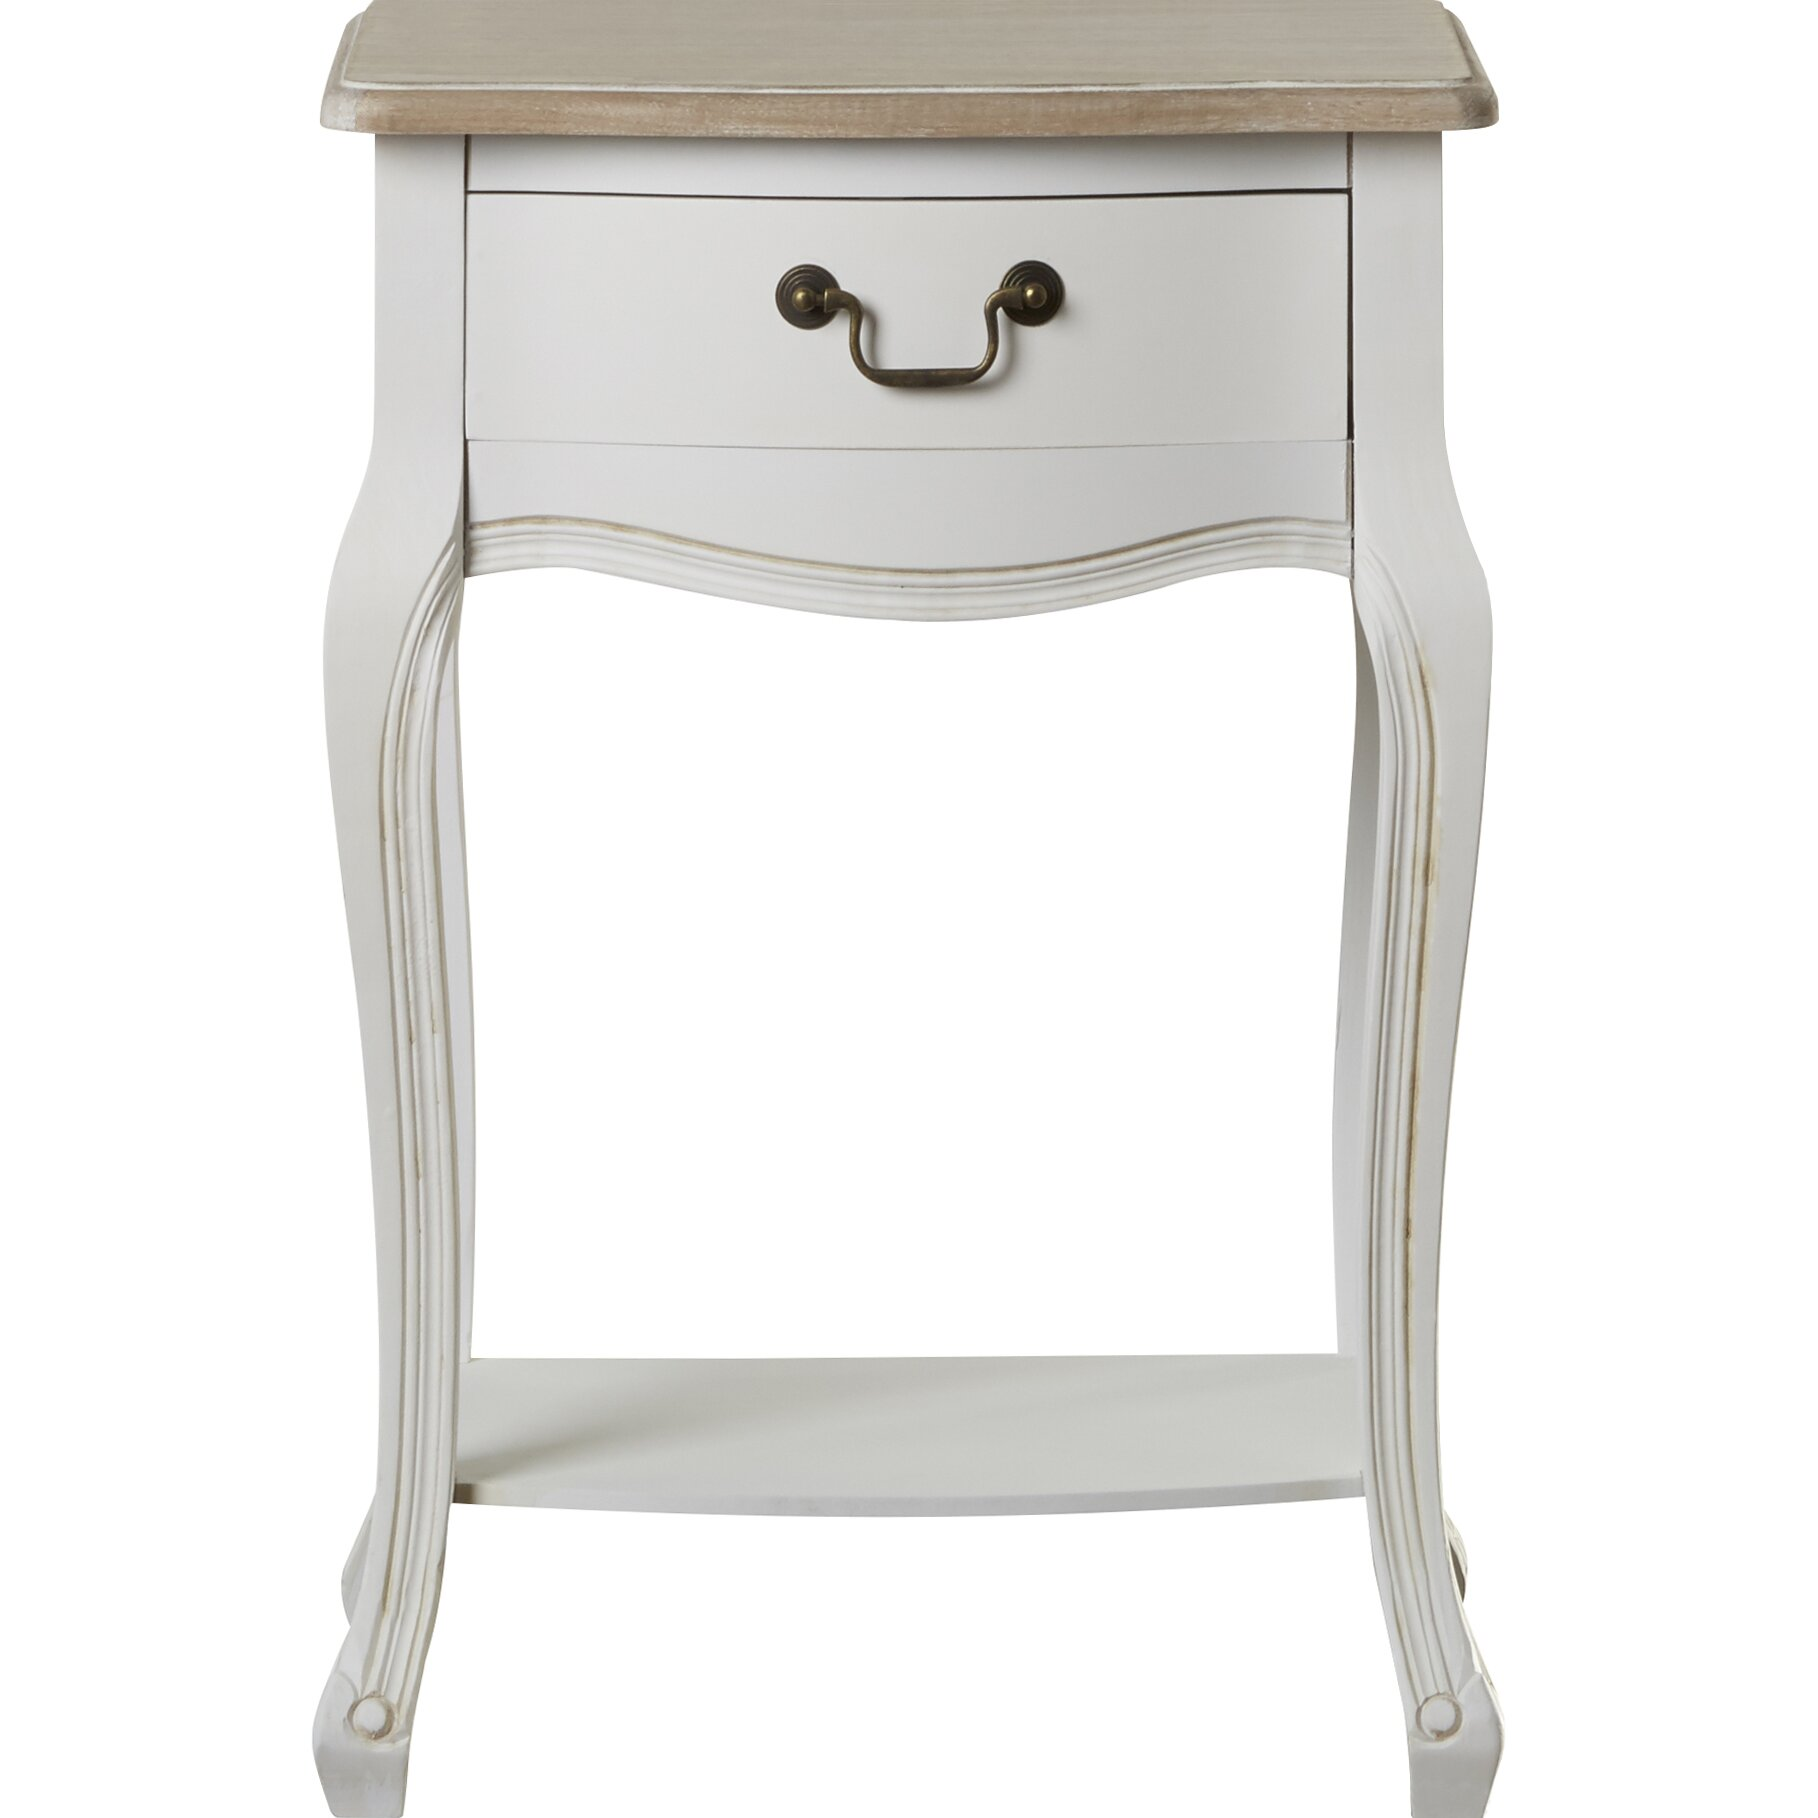 Lily manor berens 1 drawer bedside table reviews for 1 drawer bedside table